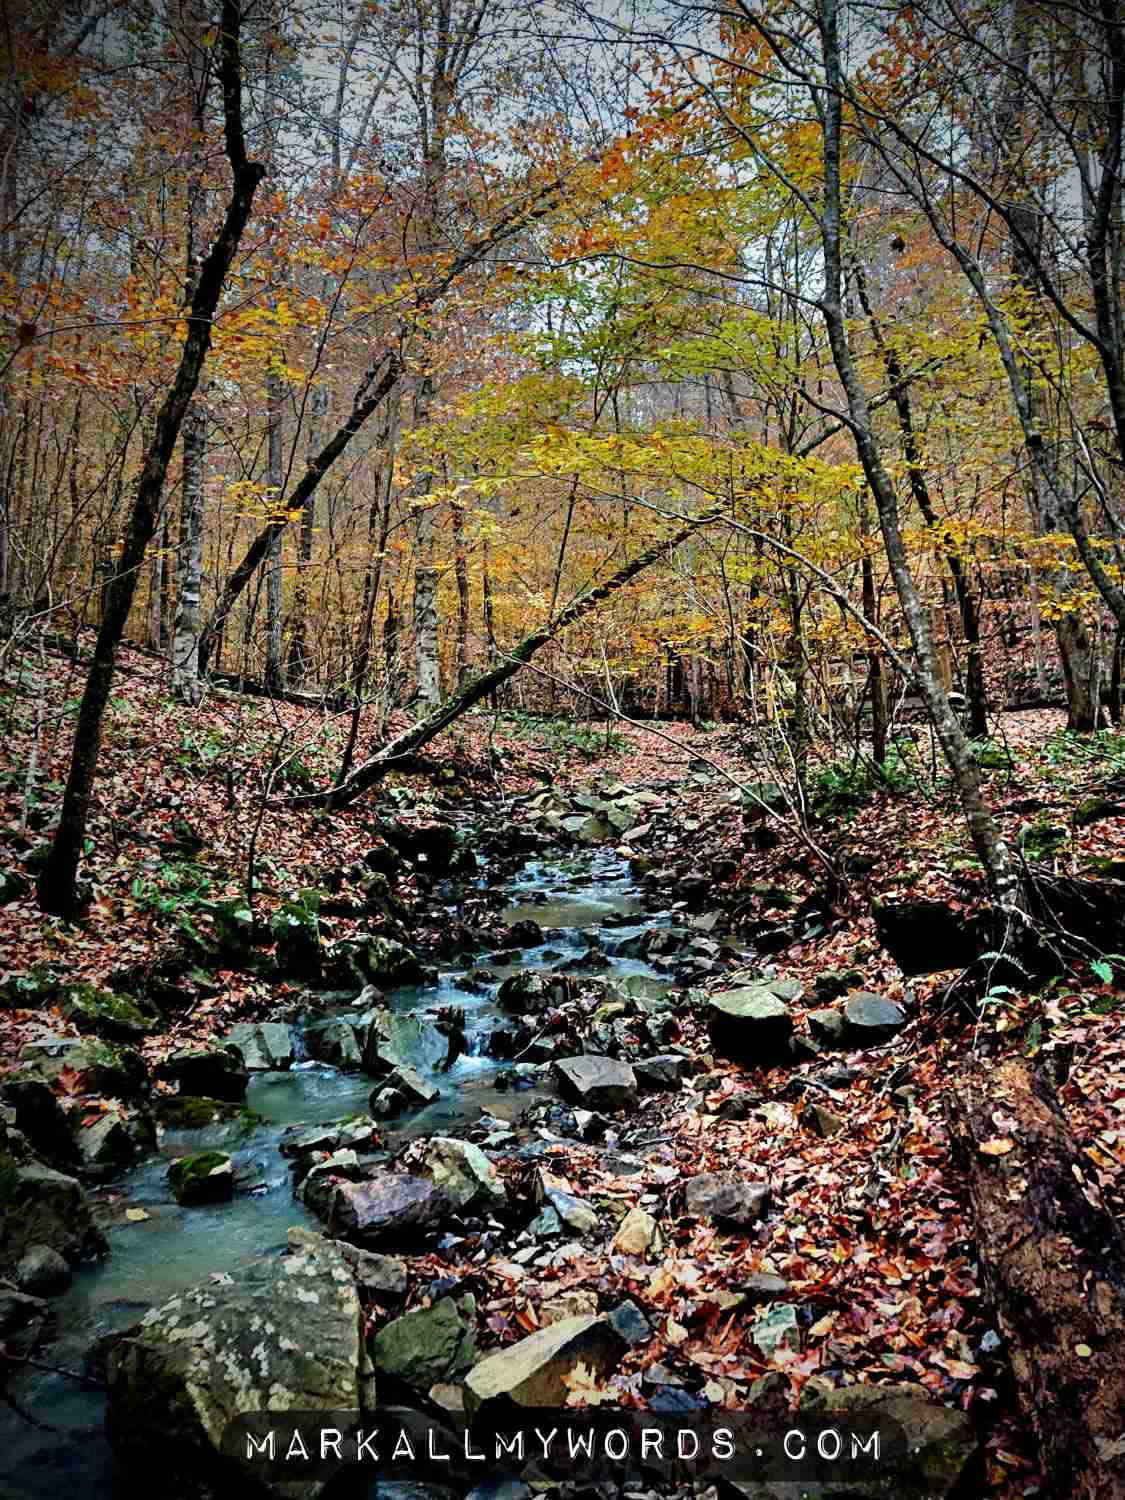 Creek with fallen leaves